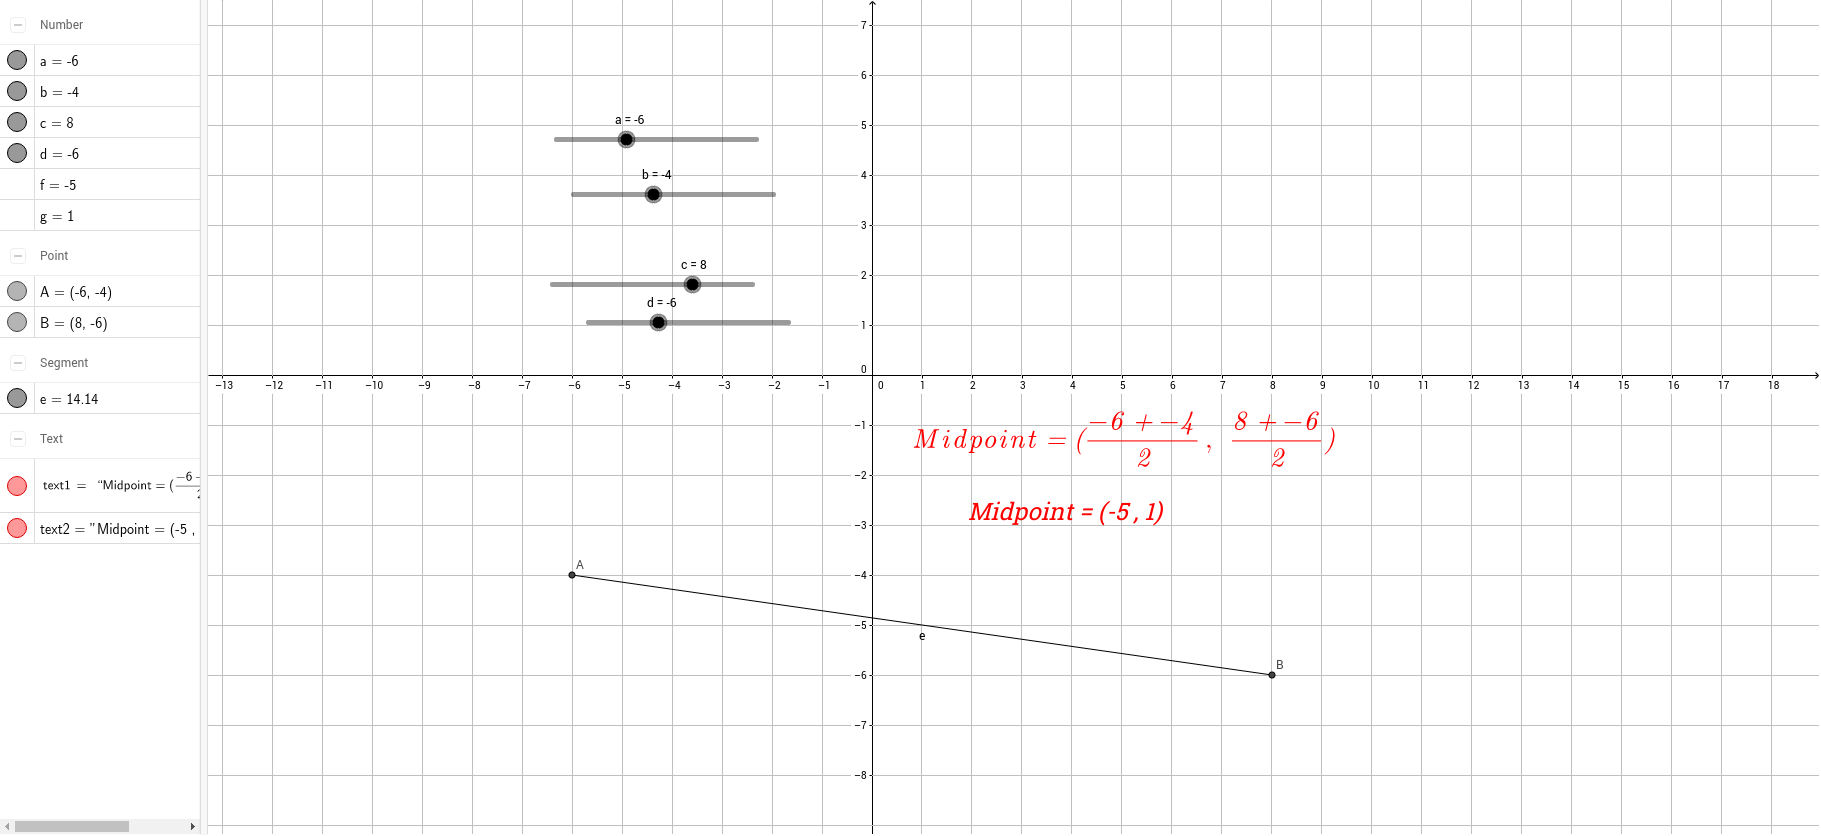 worksheet Midpoint Worksheet midpoint formula geogebra this worksheet helps students to explore the for 2 points in coordinate plane